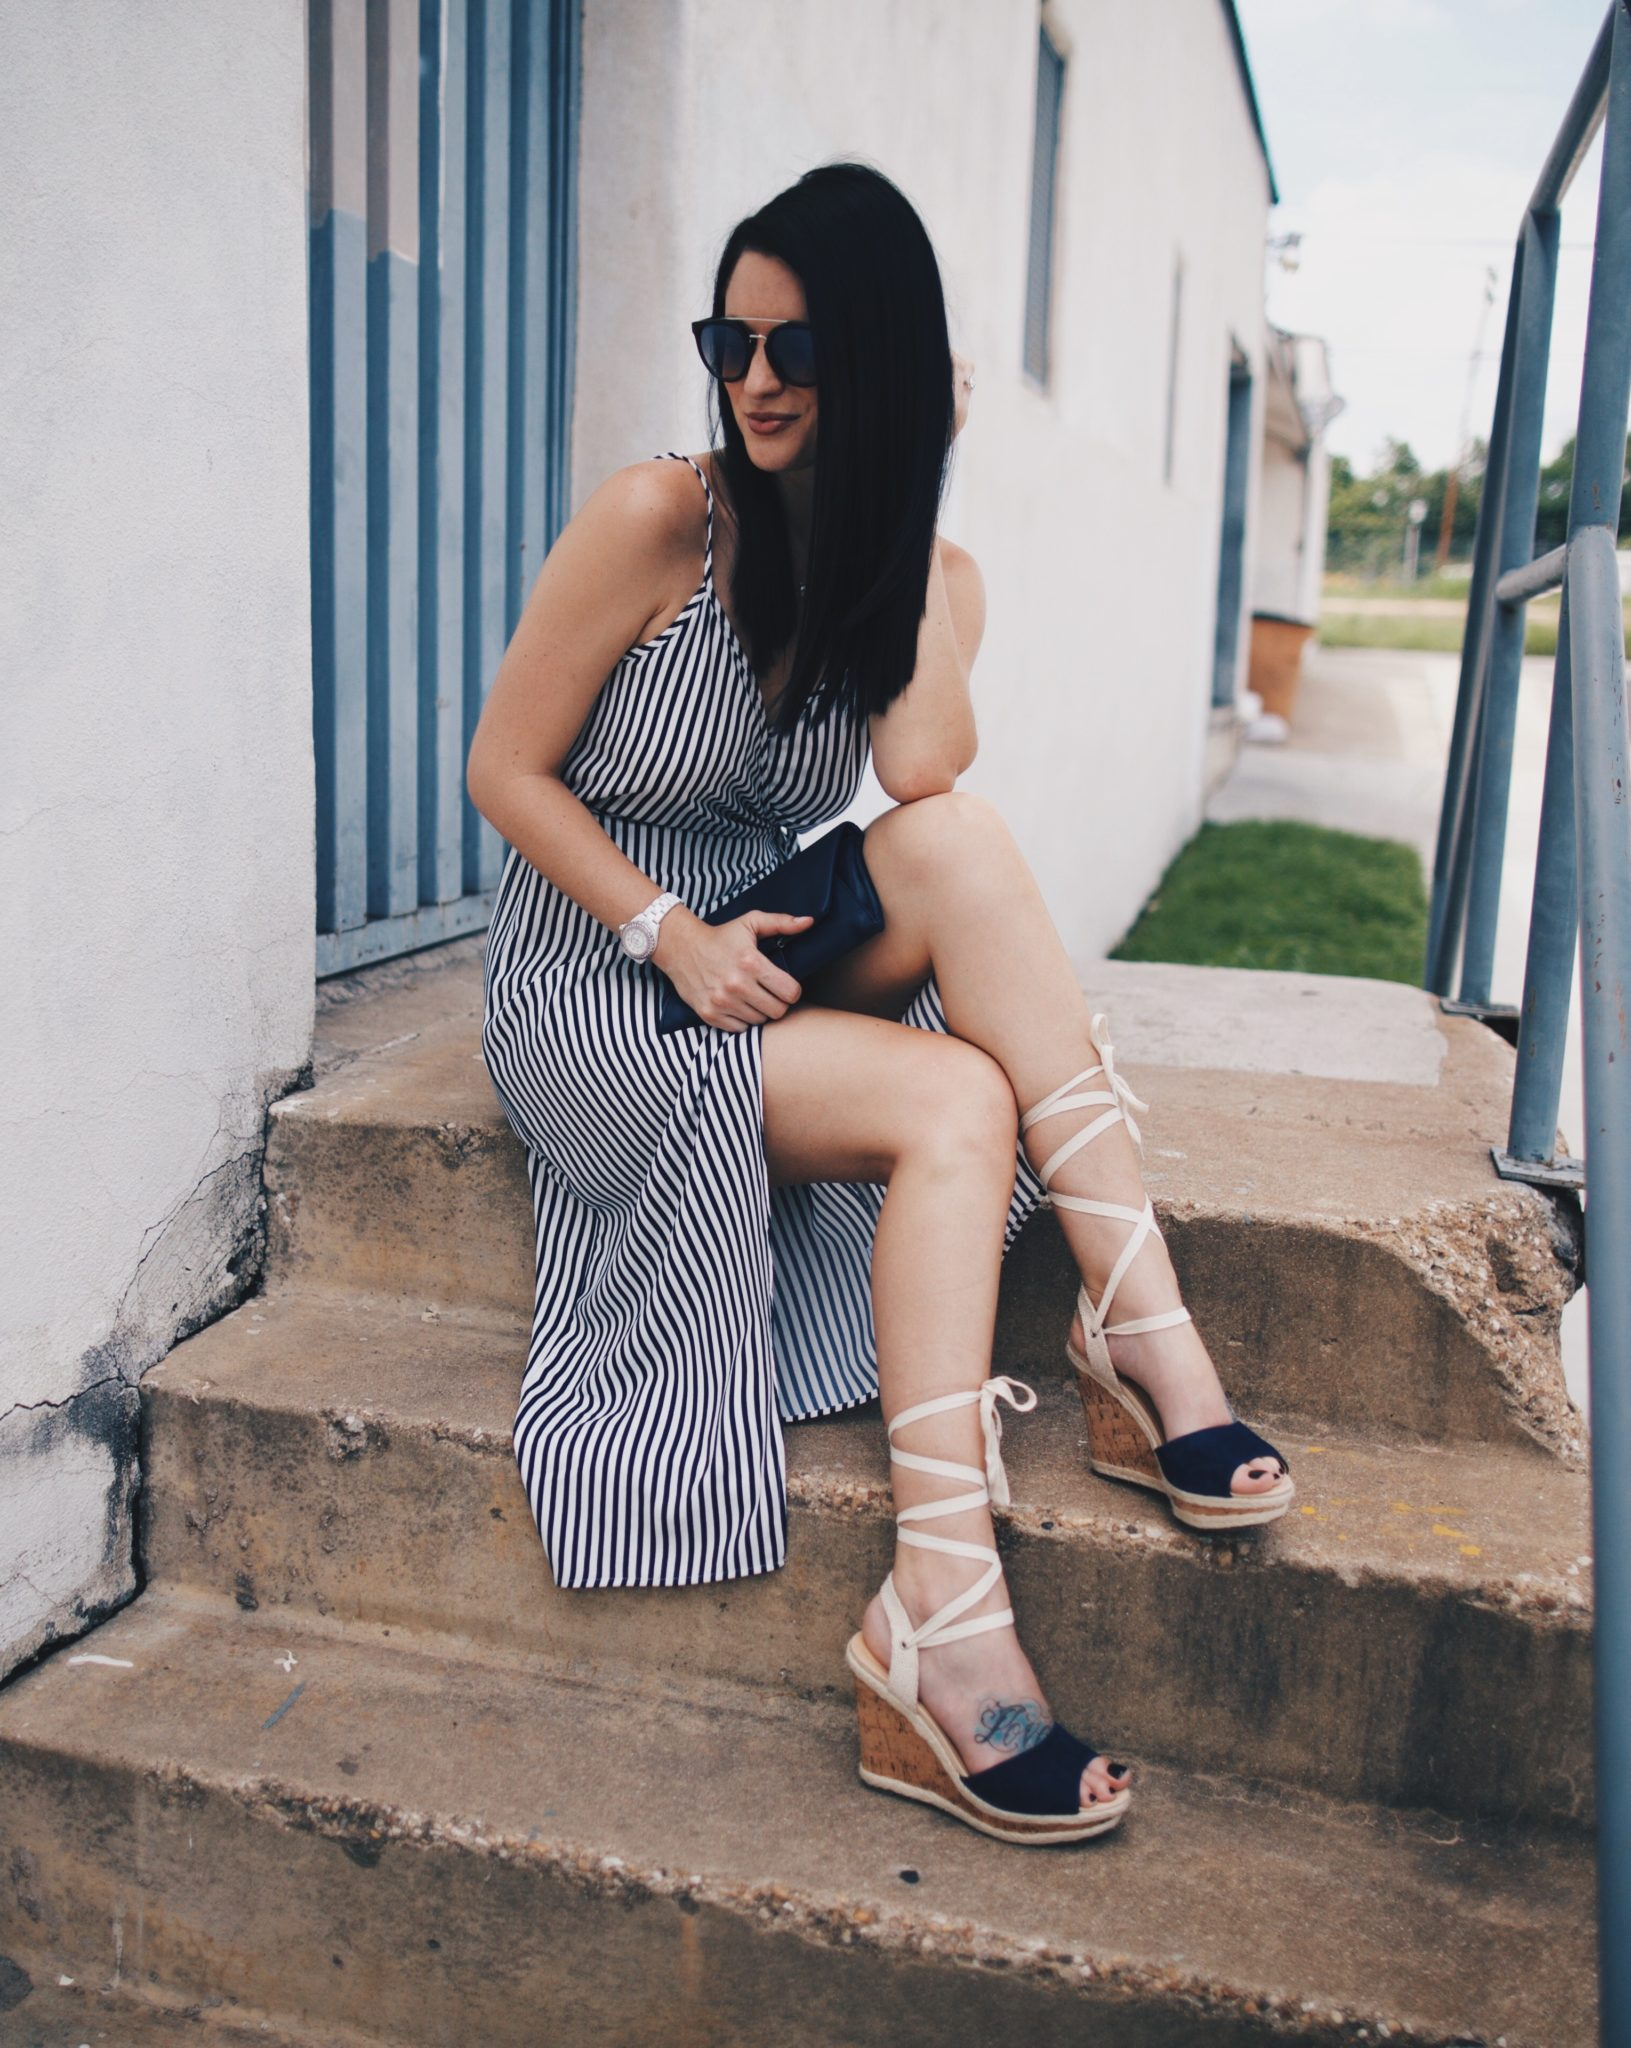 Striped Wrap Midi Dress | how to style a wrap dress | how to wear a wrap dress | wrap dress styling tips | summer fashion tips | summer outfit ideas | summer style tips | what to wear for summer | warm weather fashion | fashion for summer | style tips for summer | outfit ideas for summer || Dressed to Kill